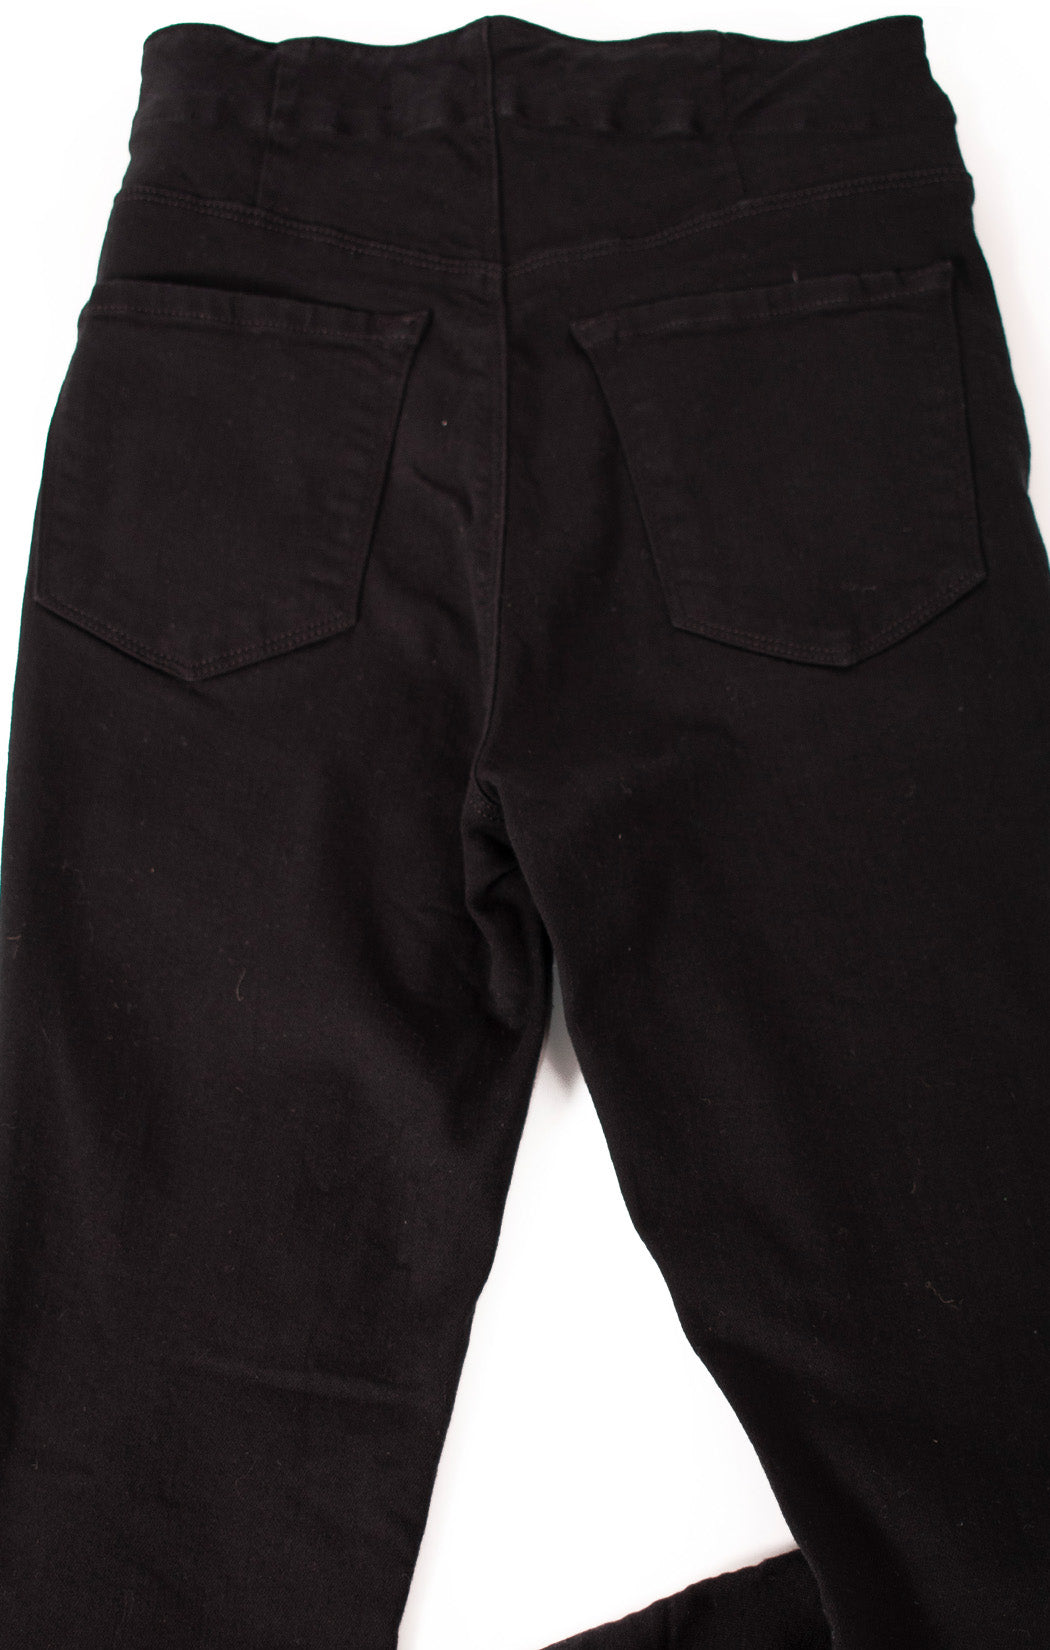 Closeup view of J BRAND Jeans